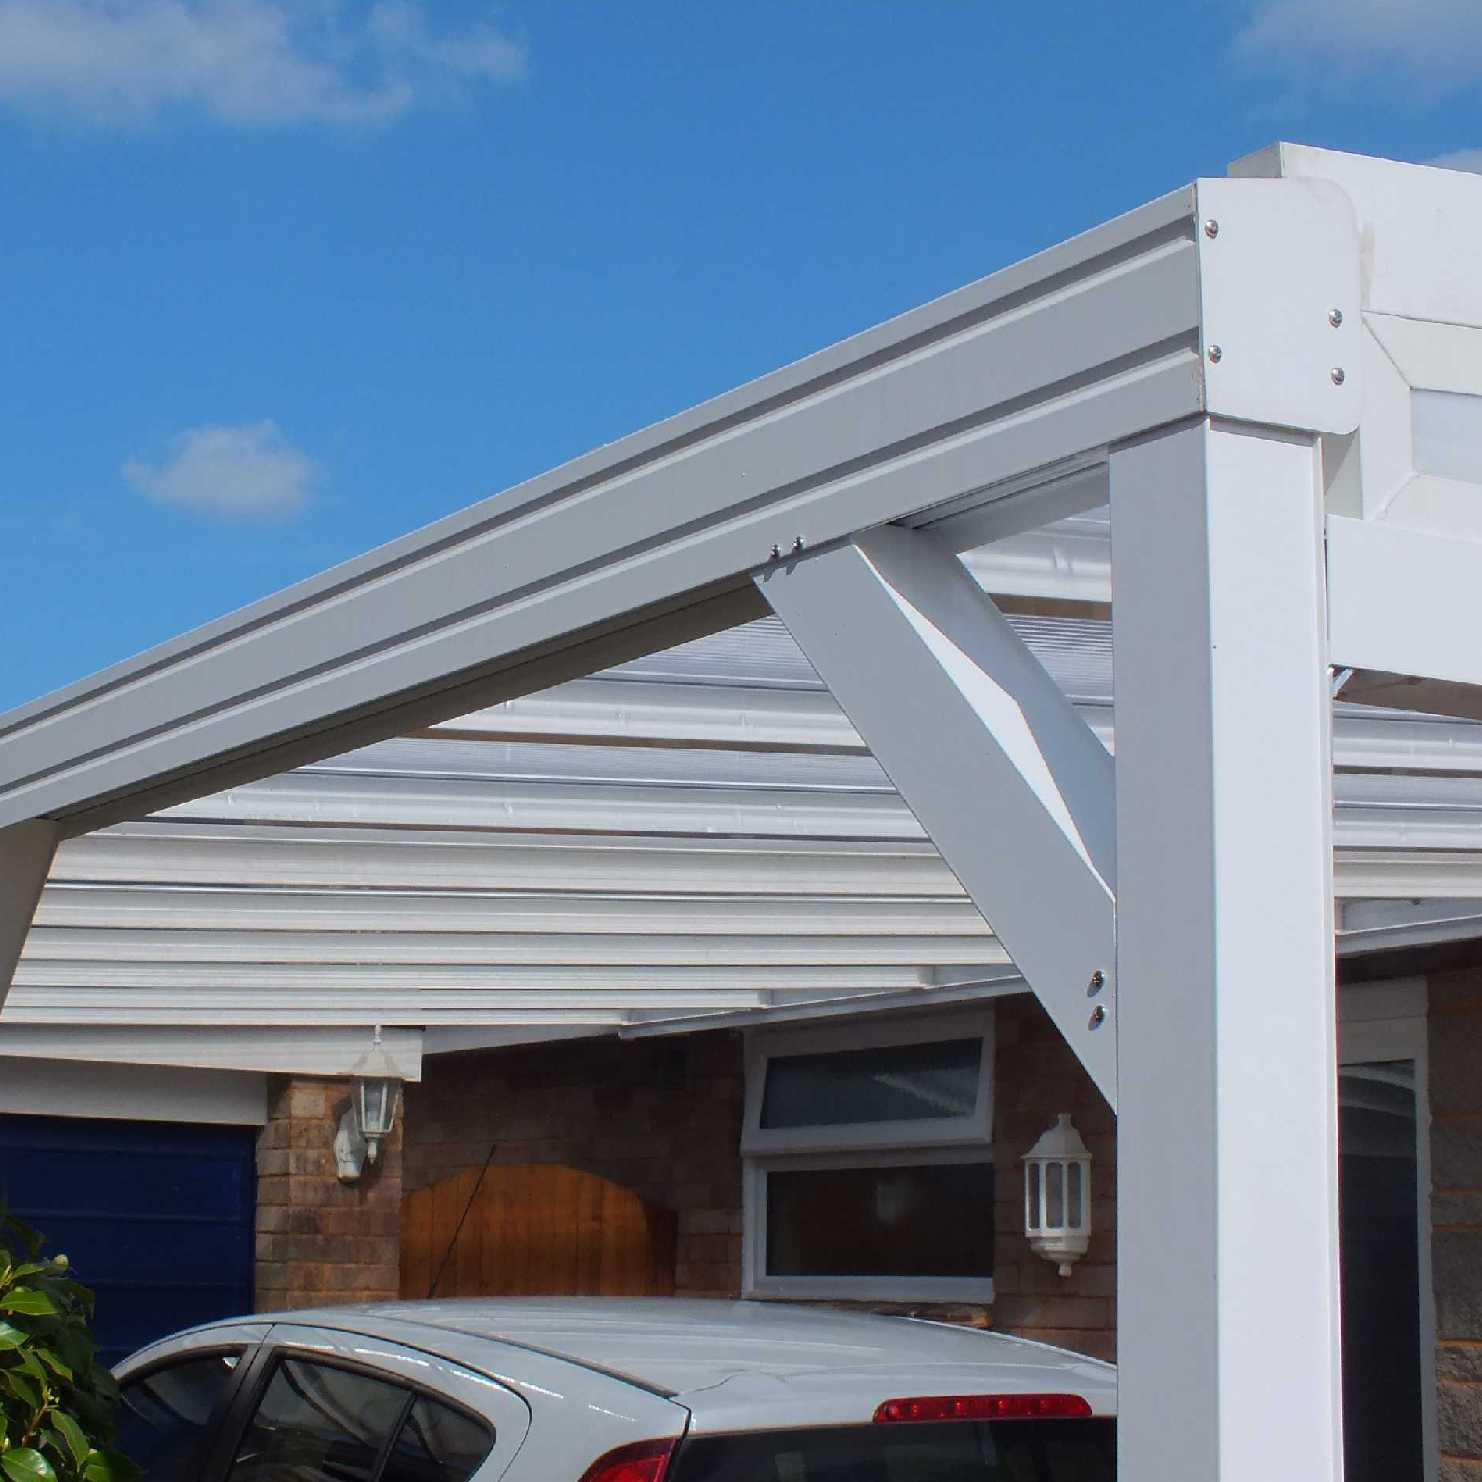 Great deals on Omega Smart Lean-To Canopy with 16mm Polycarbonate Glazing - 5.9m (W) x 4.5m (P), (3) Supporting Posts